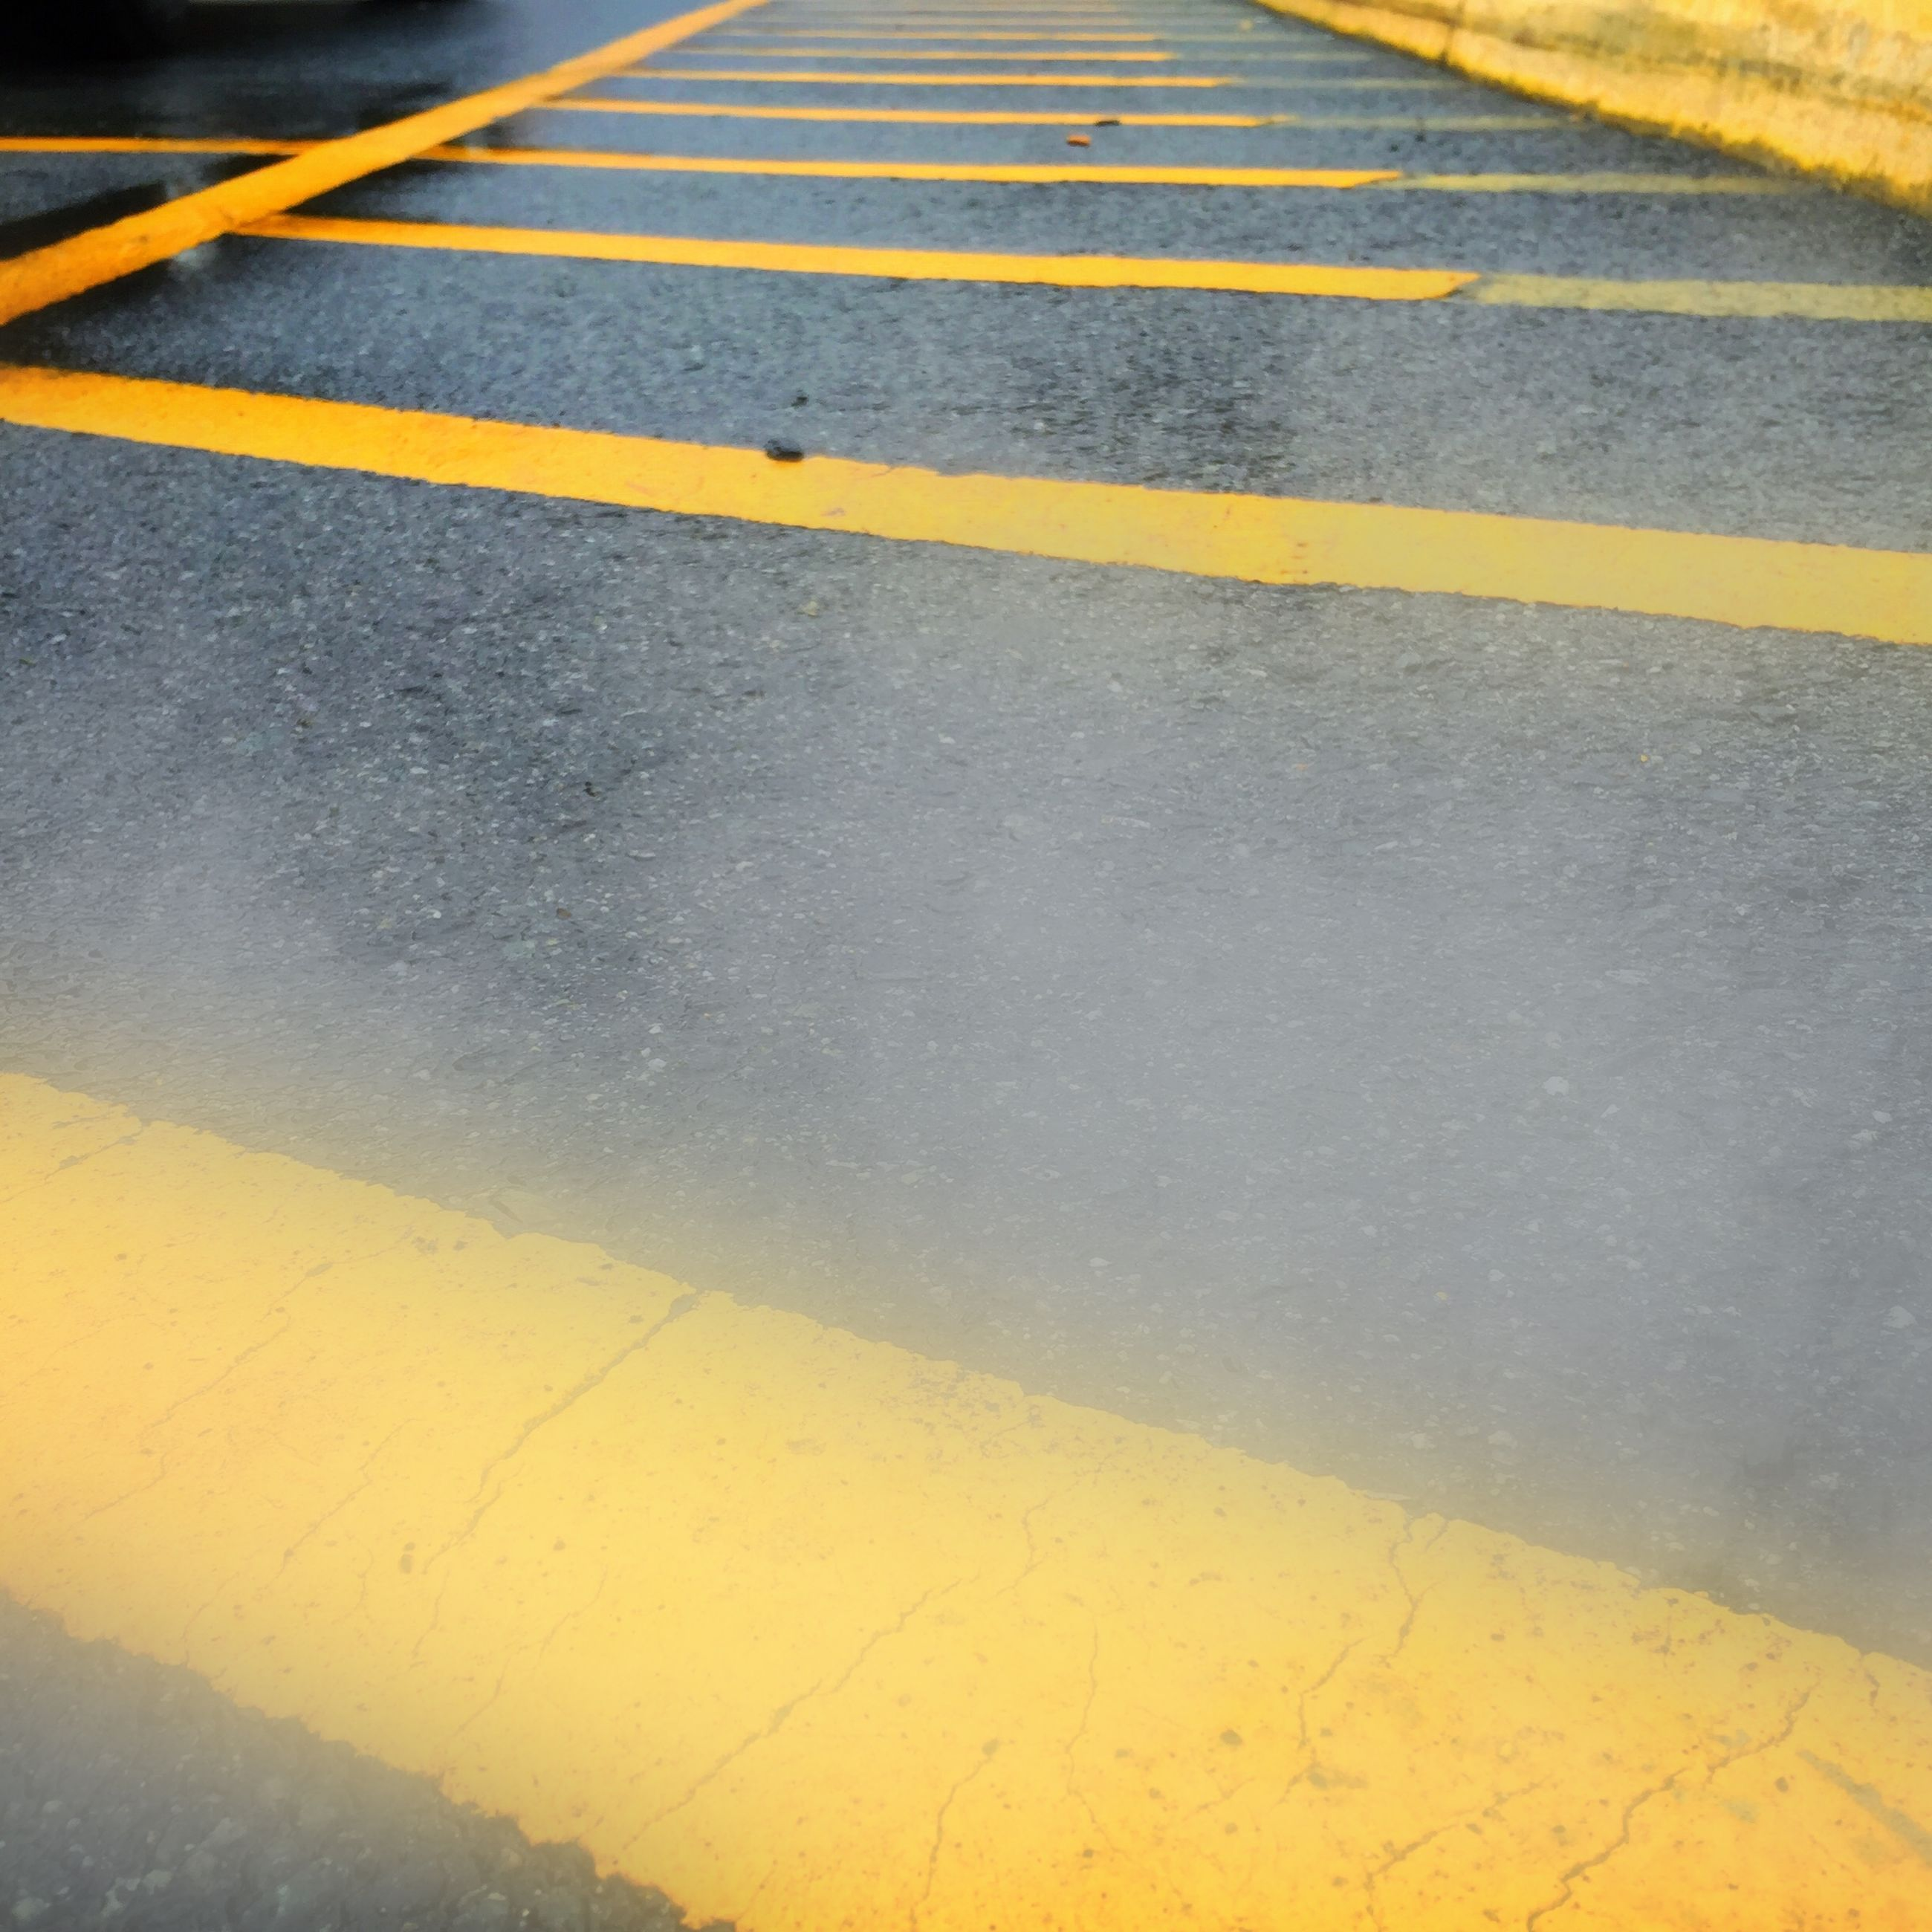 transportation, road marking, asphalt, road, the way forward, street, high angle view, yellow, outdoors, vanishing point, diminishing perspective, mode of transport, no people, day, dividing line, sky, travel, surface level, nature, empty road